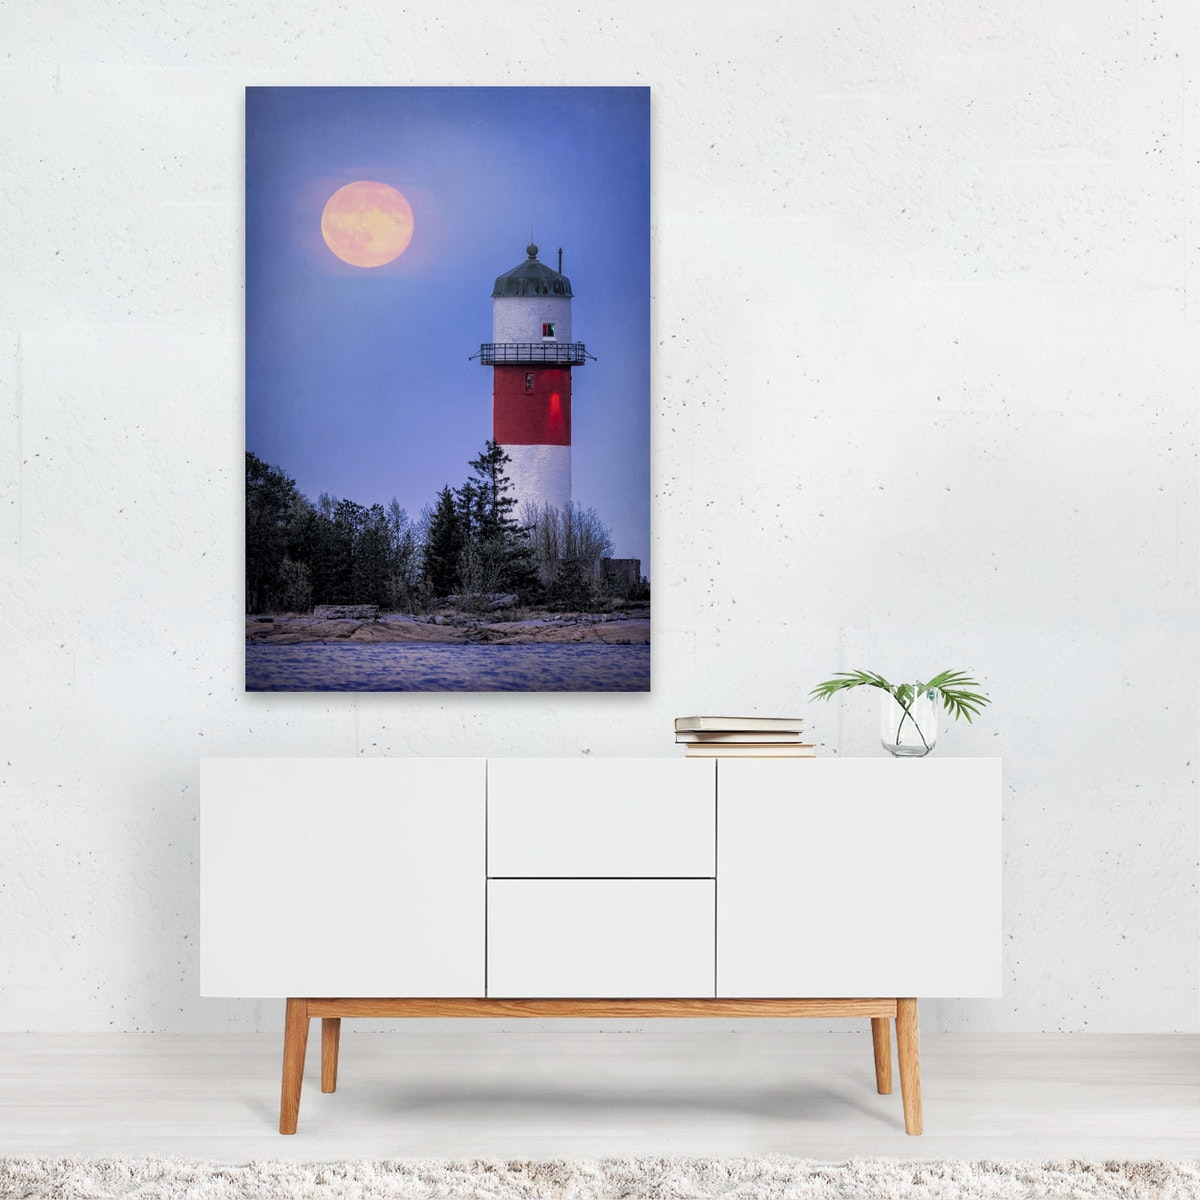 The Moon and the Lighthouse